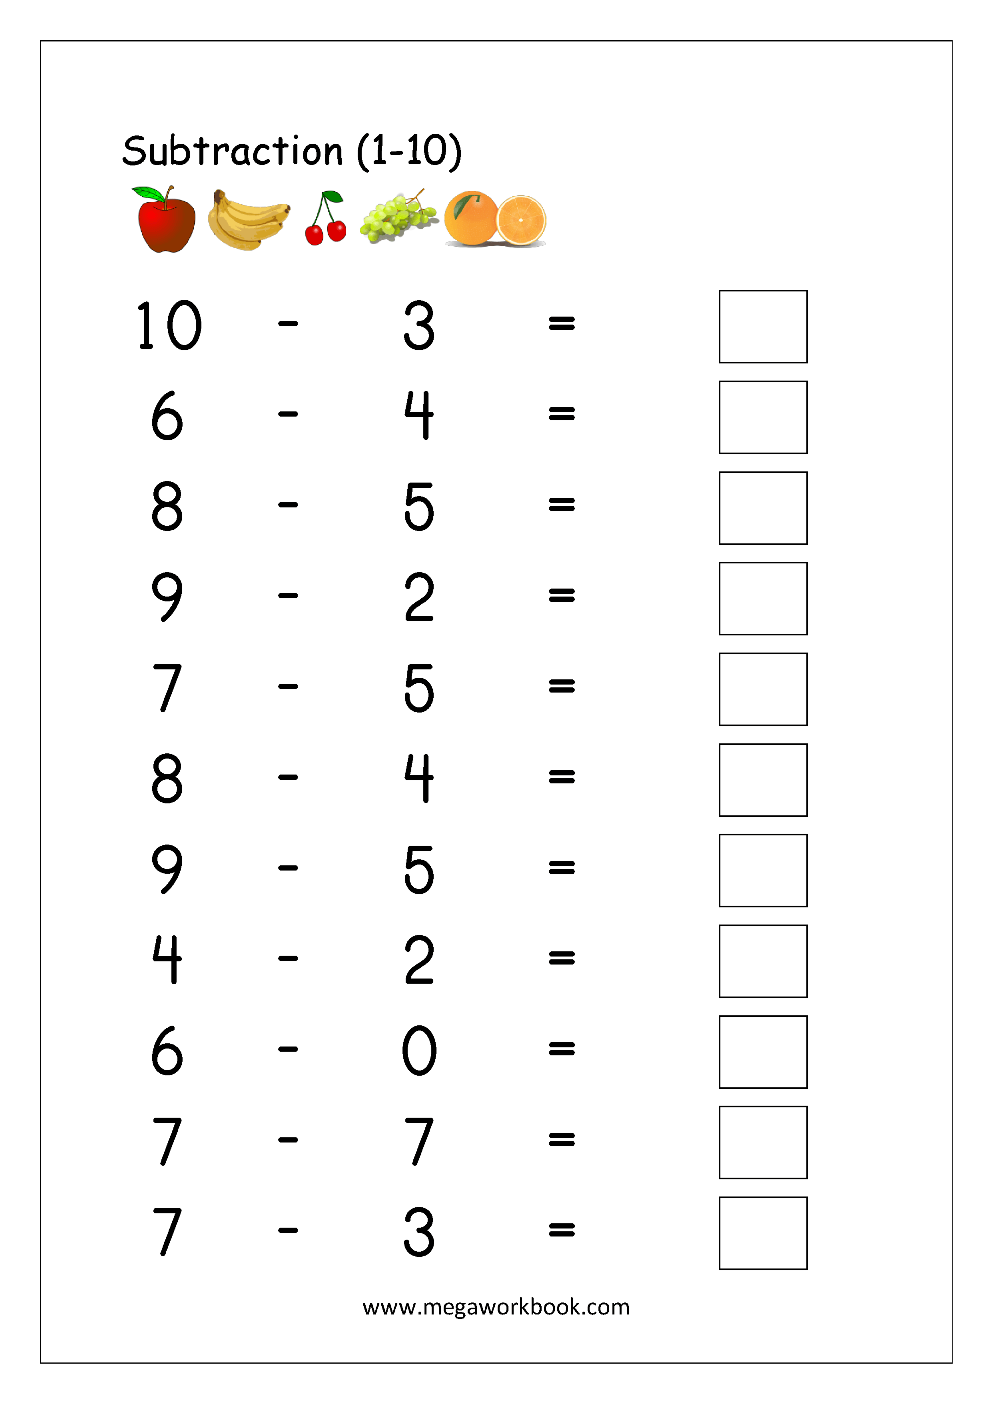 medium resolution of Free Printable Number Subtraction (1-10) Worksheets For Grade 1 And  Kindergarten - Subtraction With Pictures/Objects To Cross Out - Subtraction  Using Number Line - MegaWorkbook